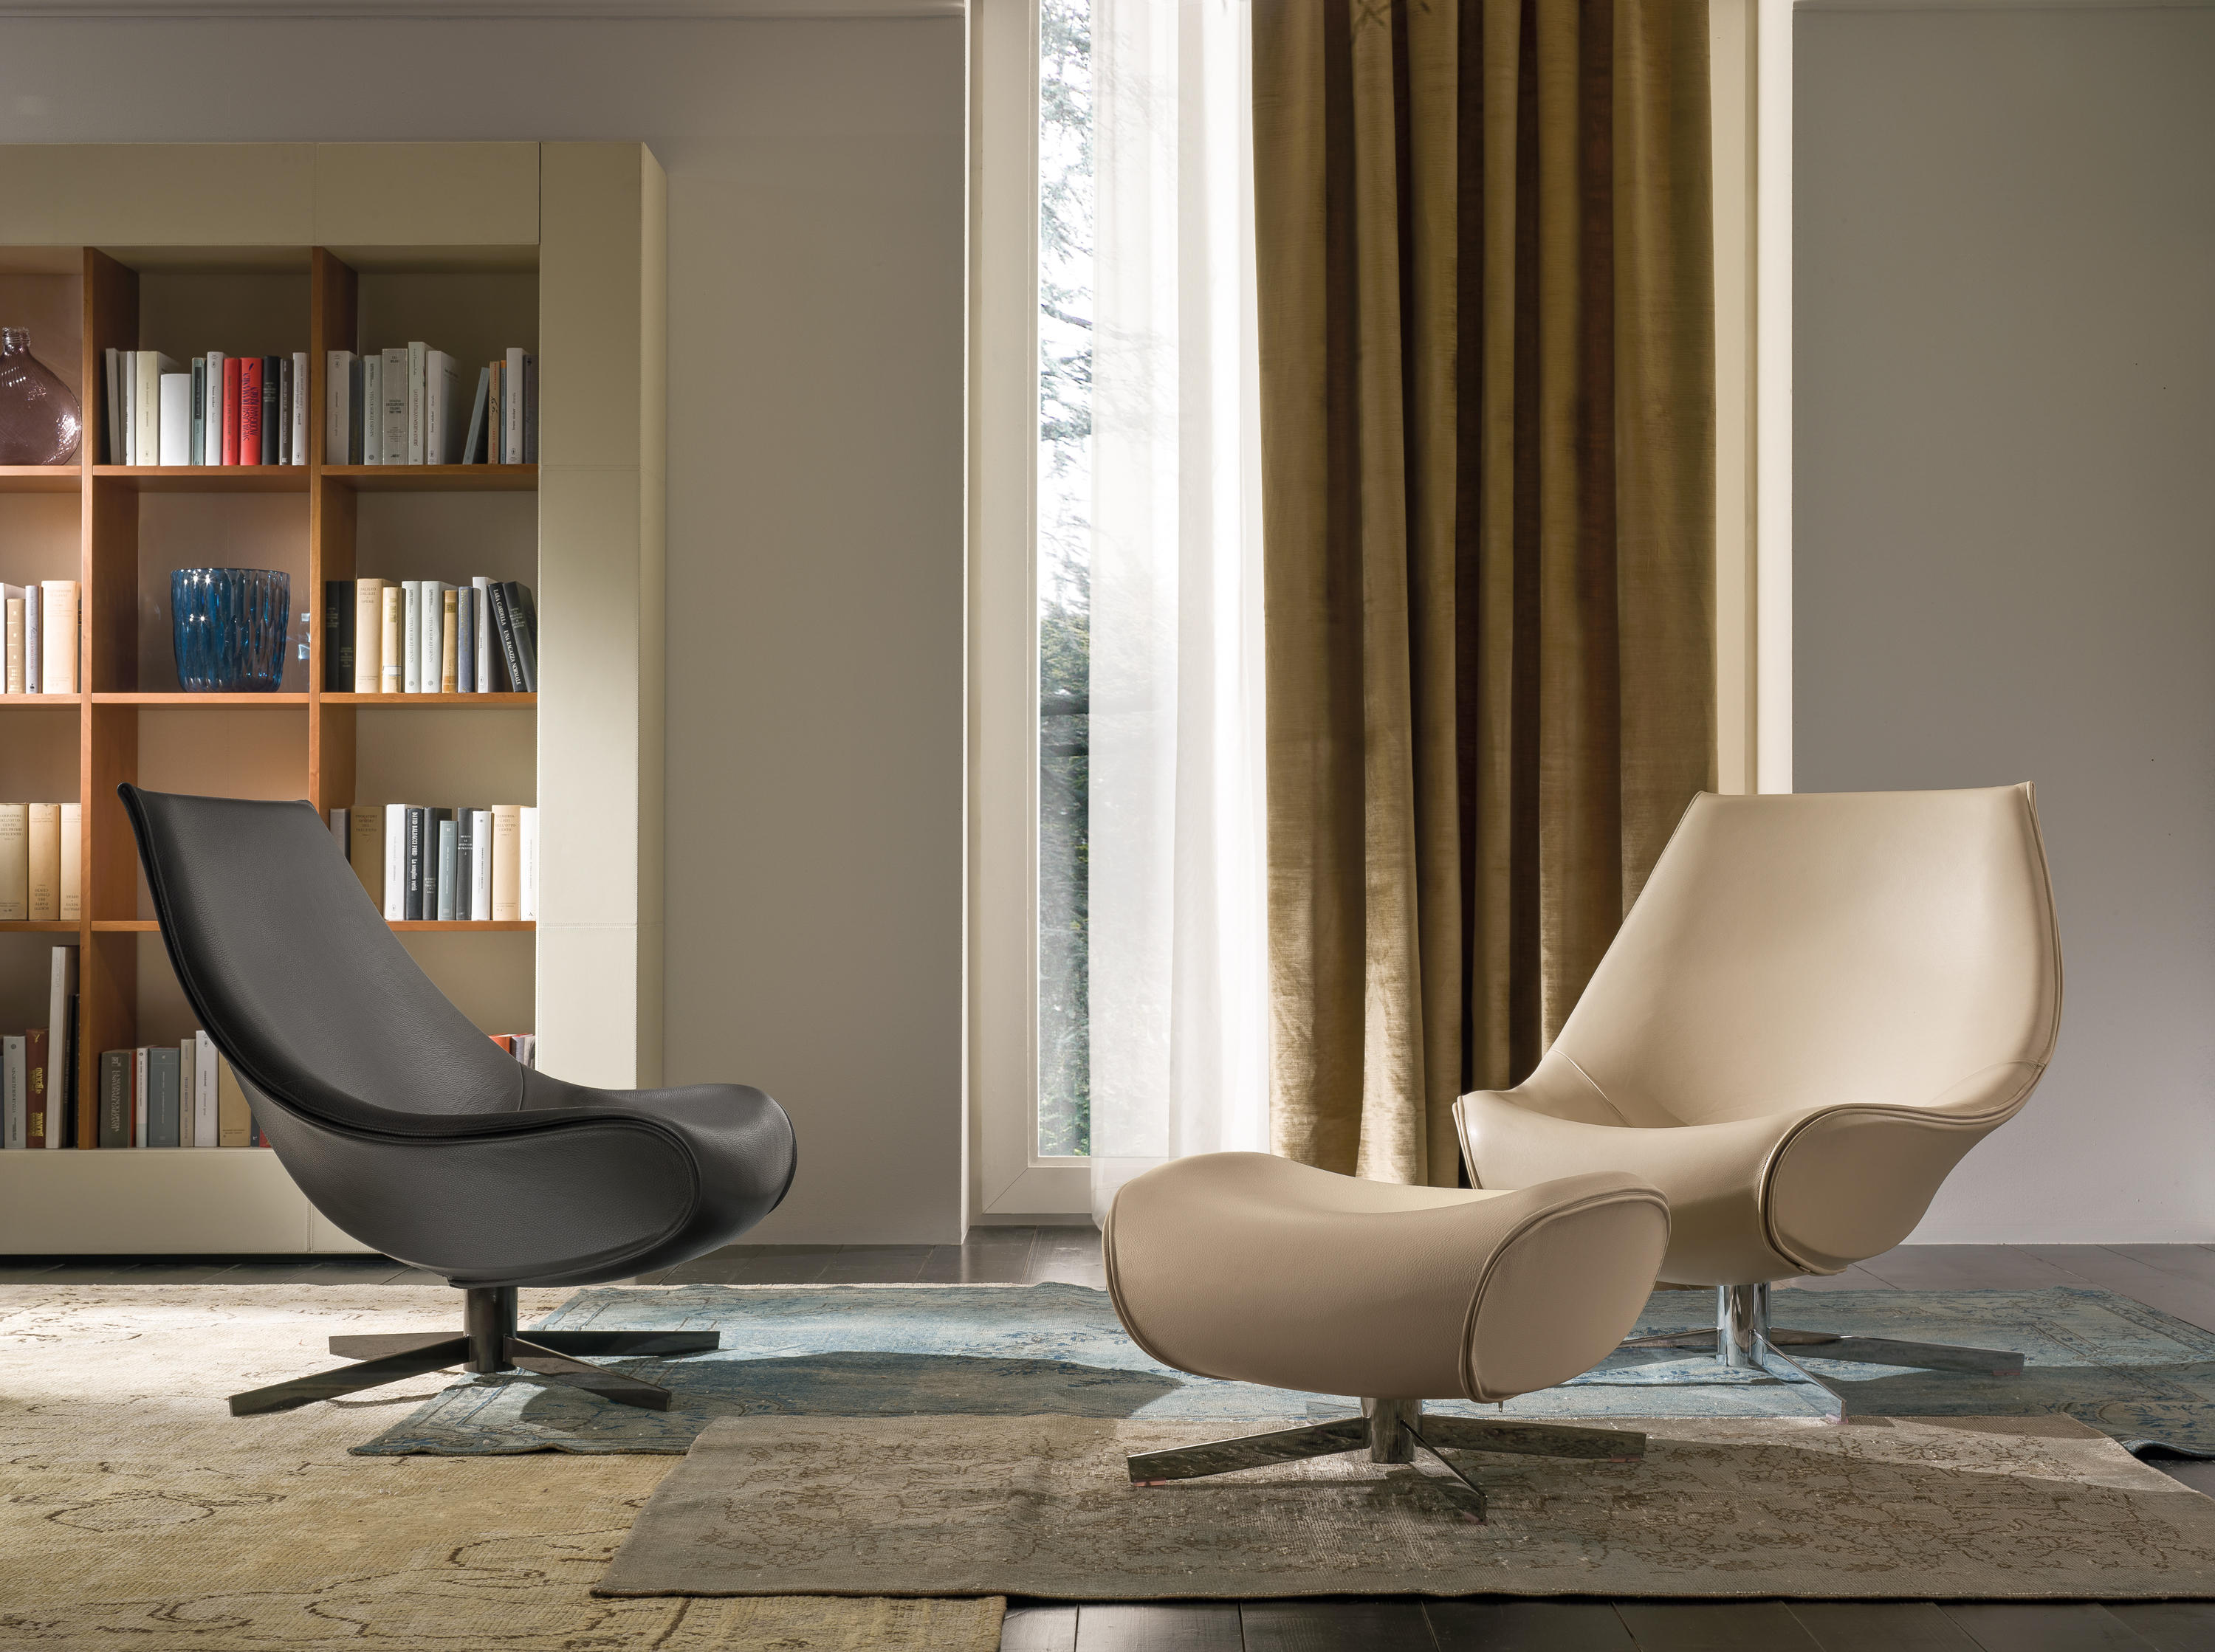 Oyster couchtische von i 4 mariani architonic for I 4 mariani